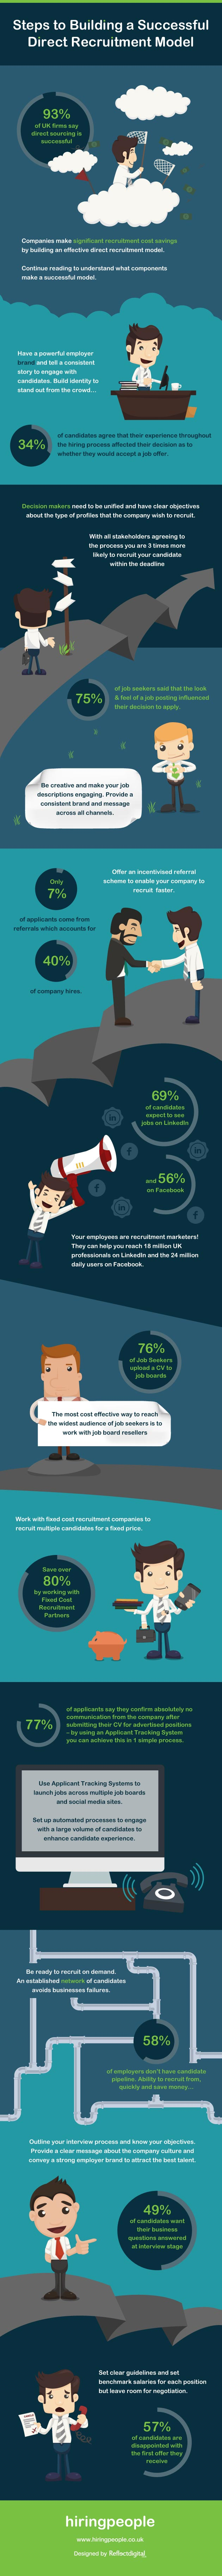 Direct Recruitment Model Infographic